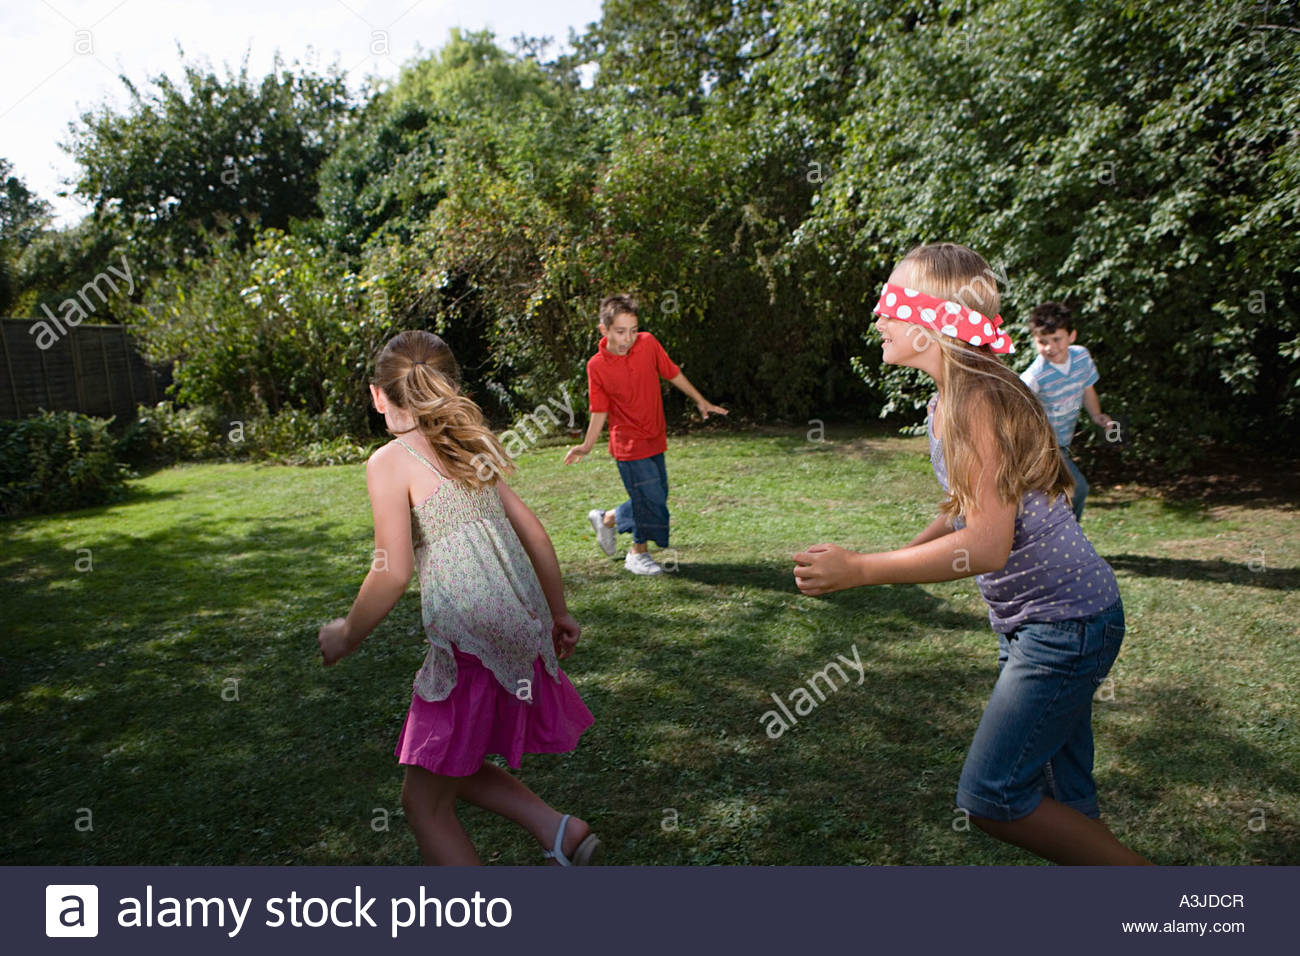 Children playing blind mans bluff - Stock Image